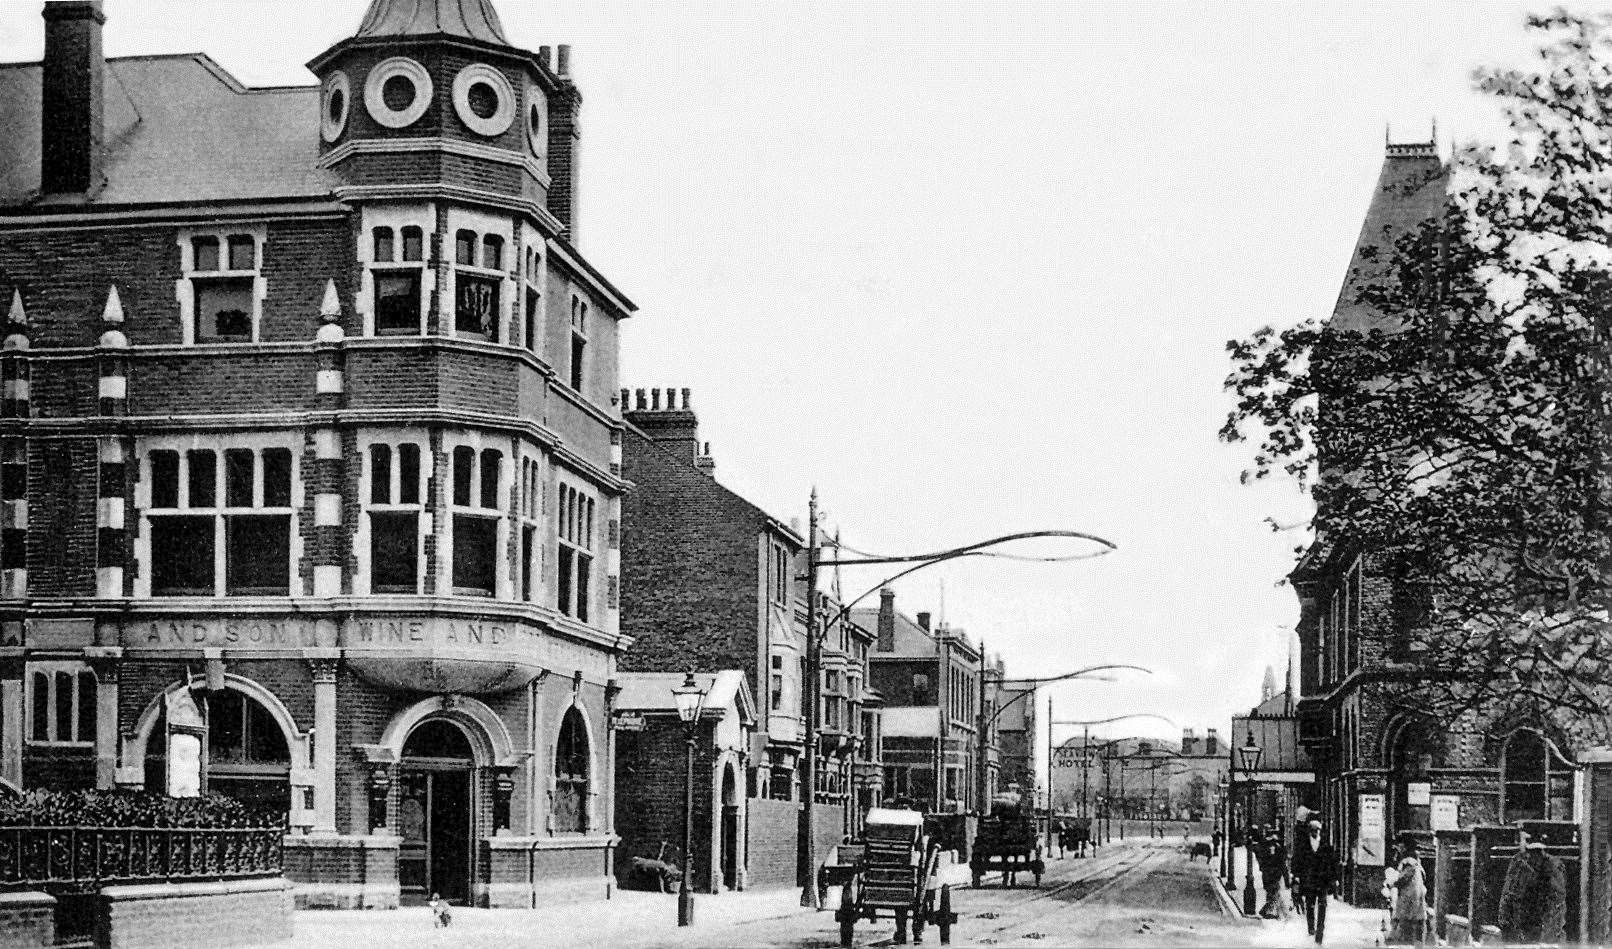 The Royal in 1922. Photo: Courtesy of Sheppey Local History Group